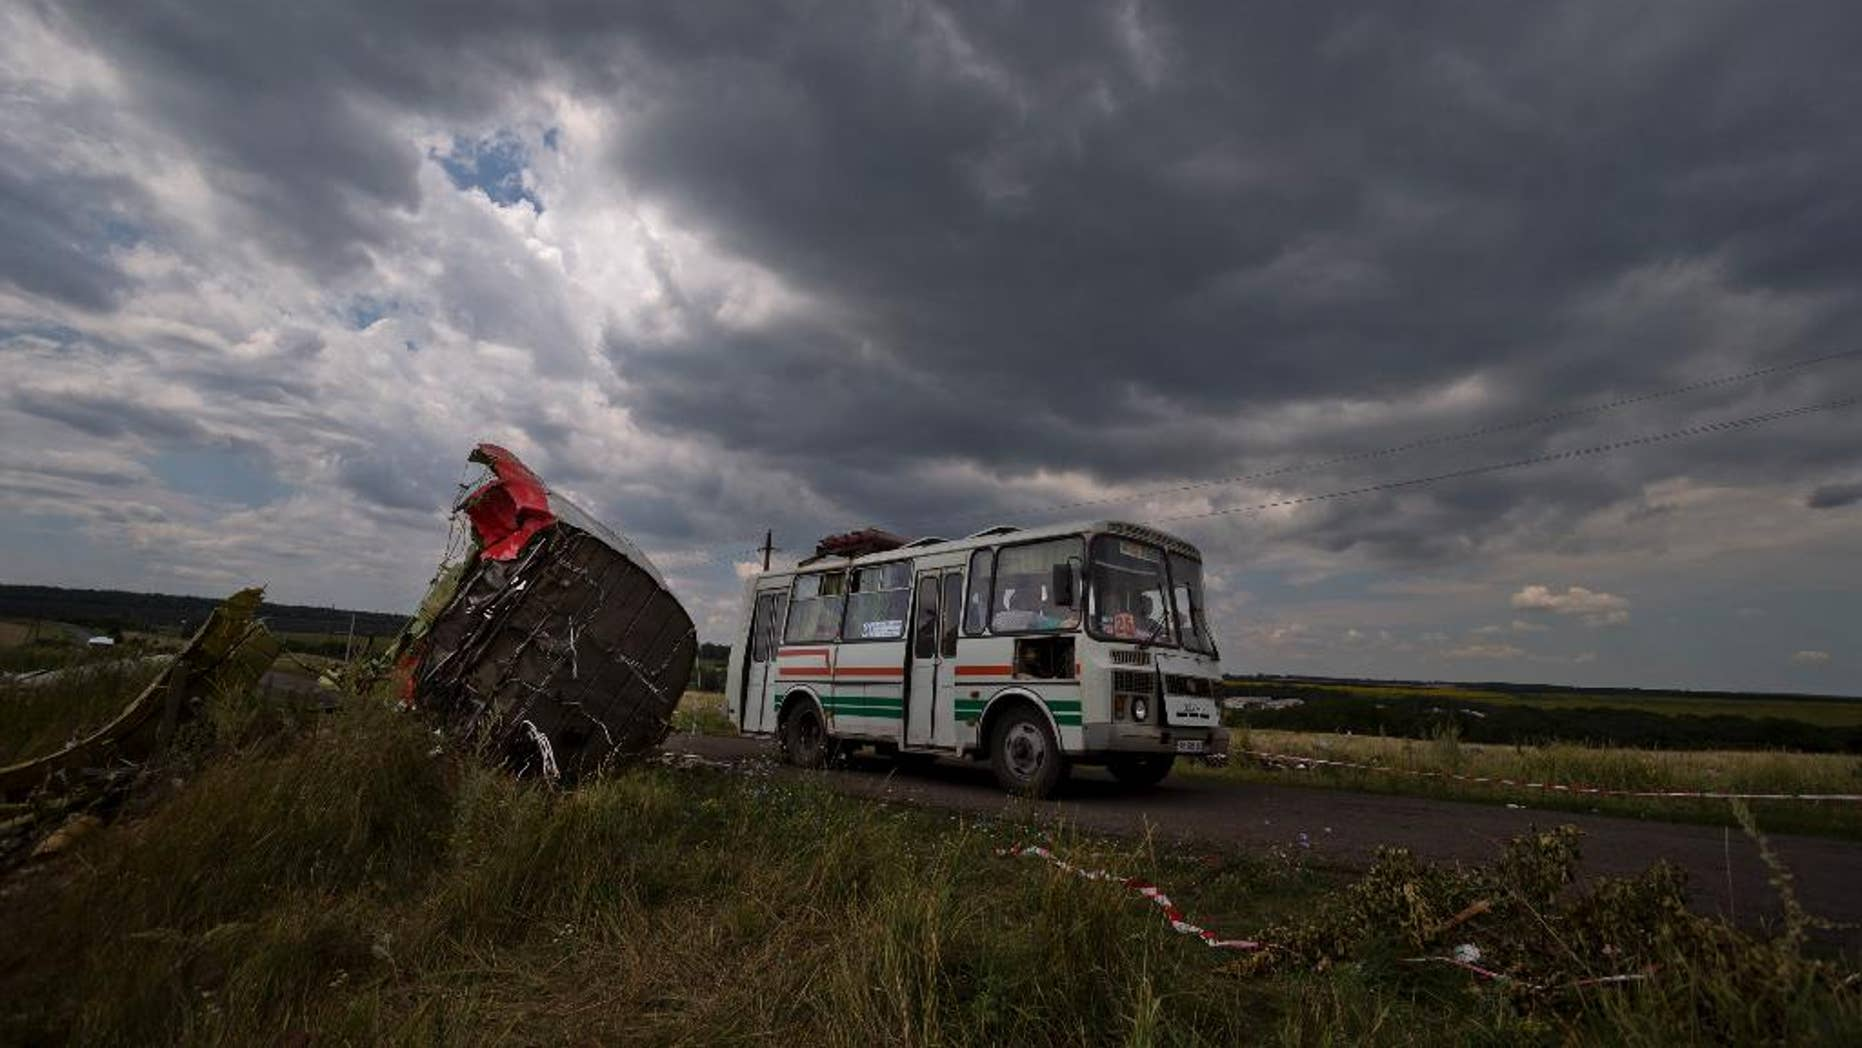 A commuter bus drives by aircraft wreckage at the crash site of Malaysia Airlines Flight 17 near the village of Hrabove, eastern Ukraine, Tuesday, July 22, 2014. A team of Malaysian investigators visited the site along with members of the OSCE mission in Ukraine for the first time since the air crash last week.(AP Photo/Vadim Ghirda)